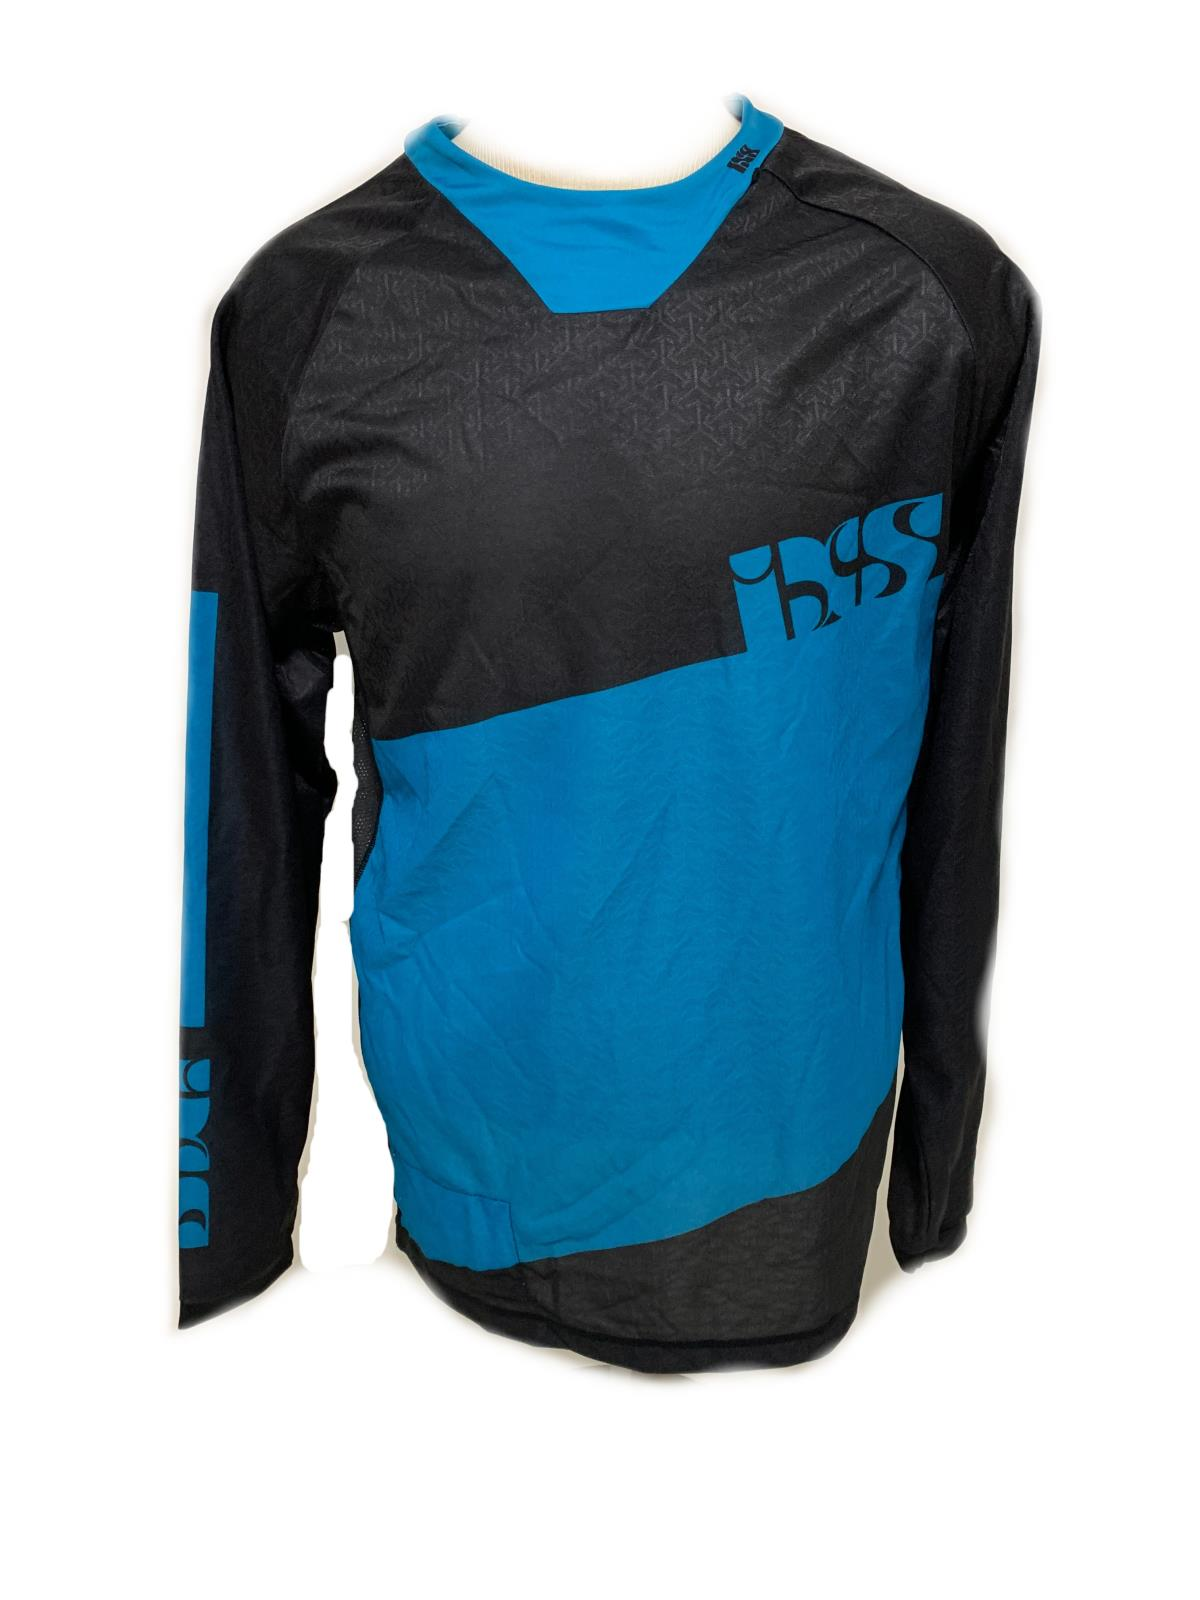 iXS DH RACE Mens LARGE Cycling Bike Bicycle JERSEY NEW W/O TAGS